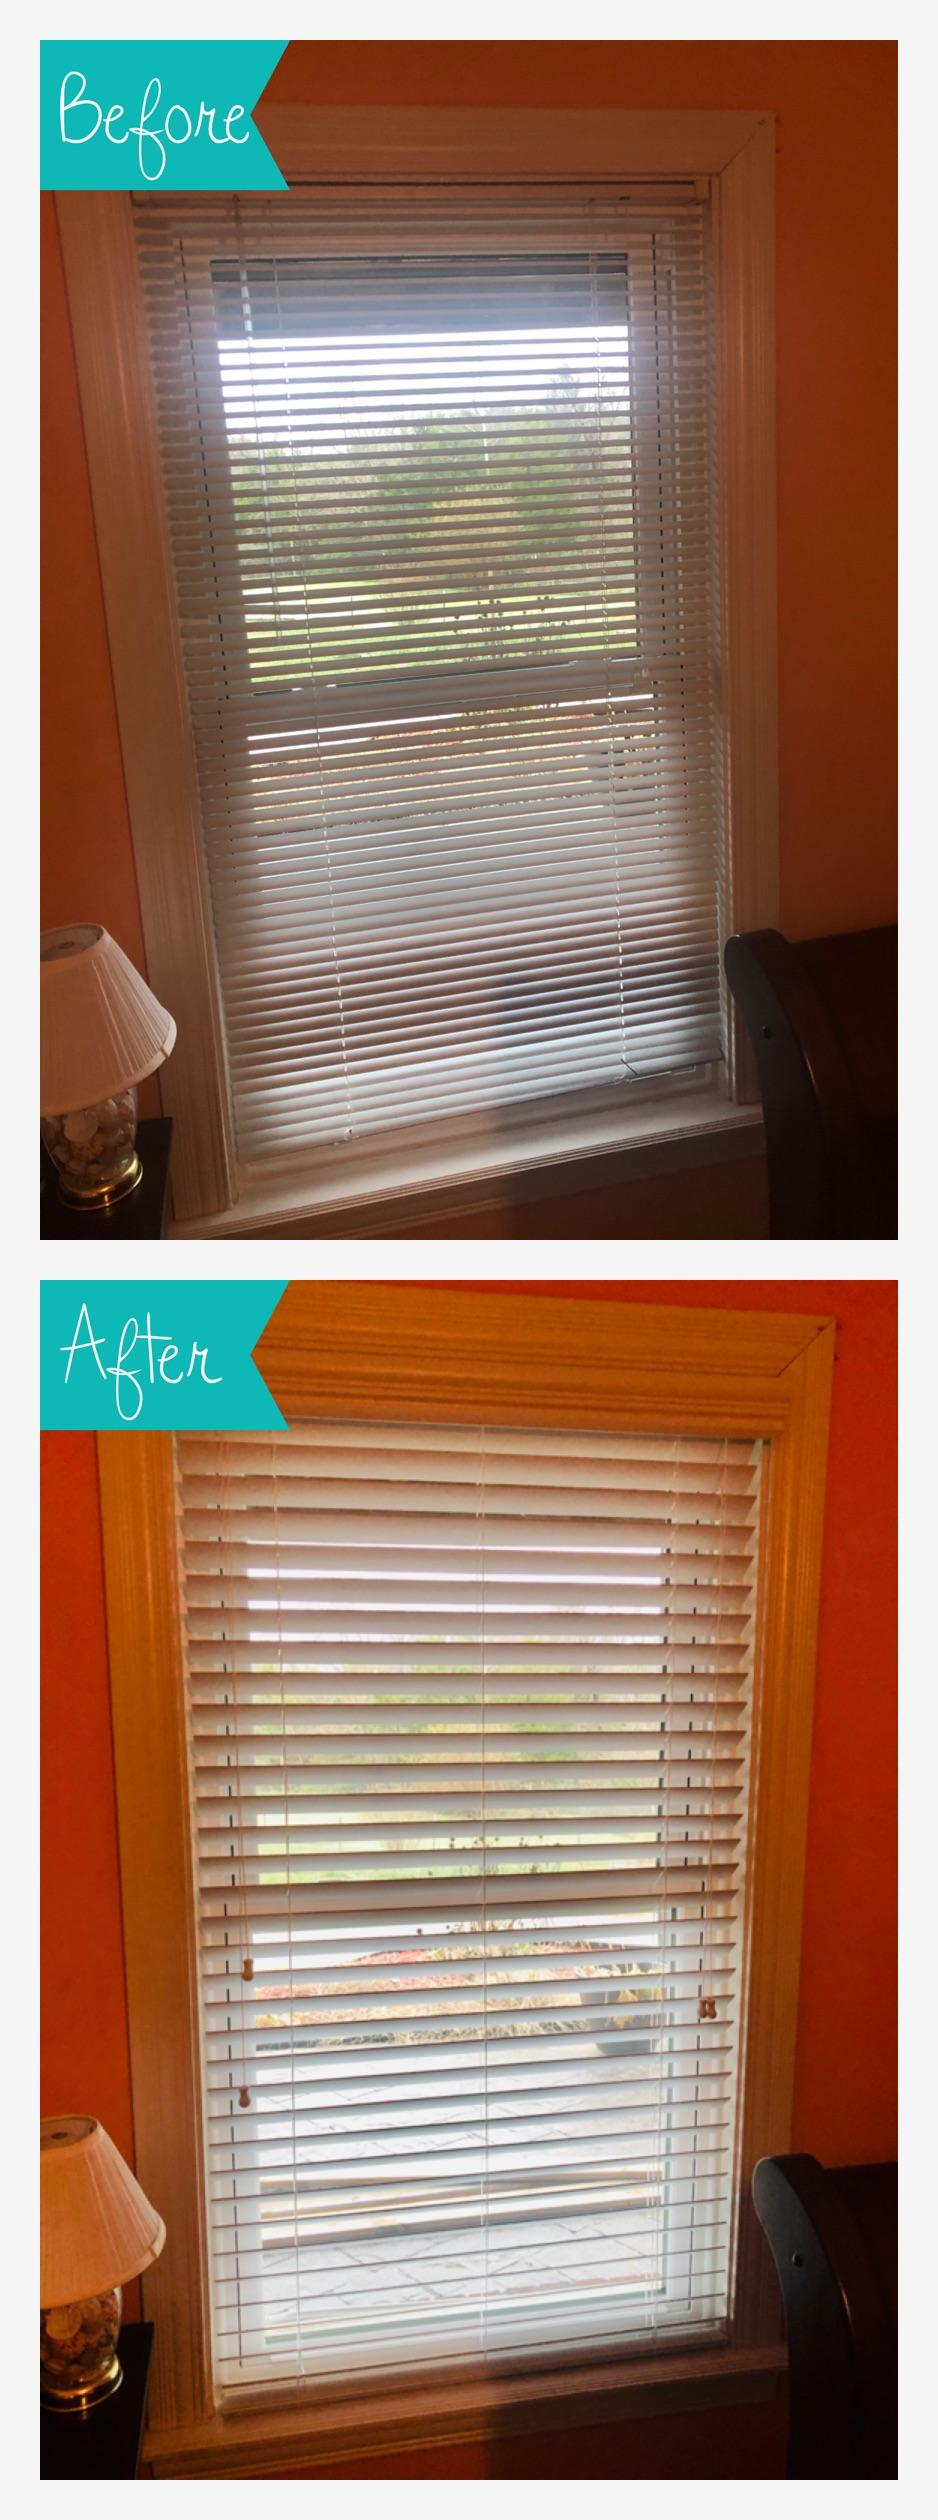 Kentuckiana Blinds Another Whole House Of Caco Blinds In Coxs Creek Ky